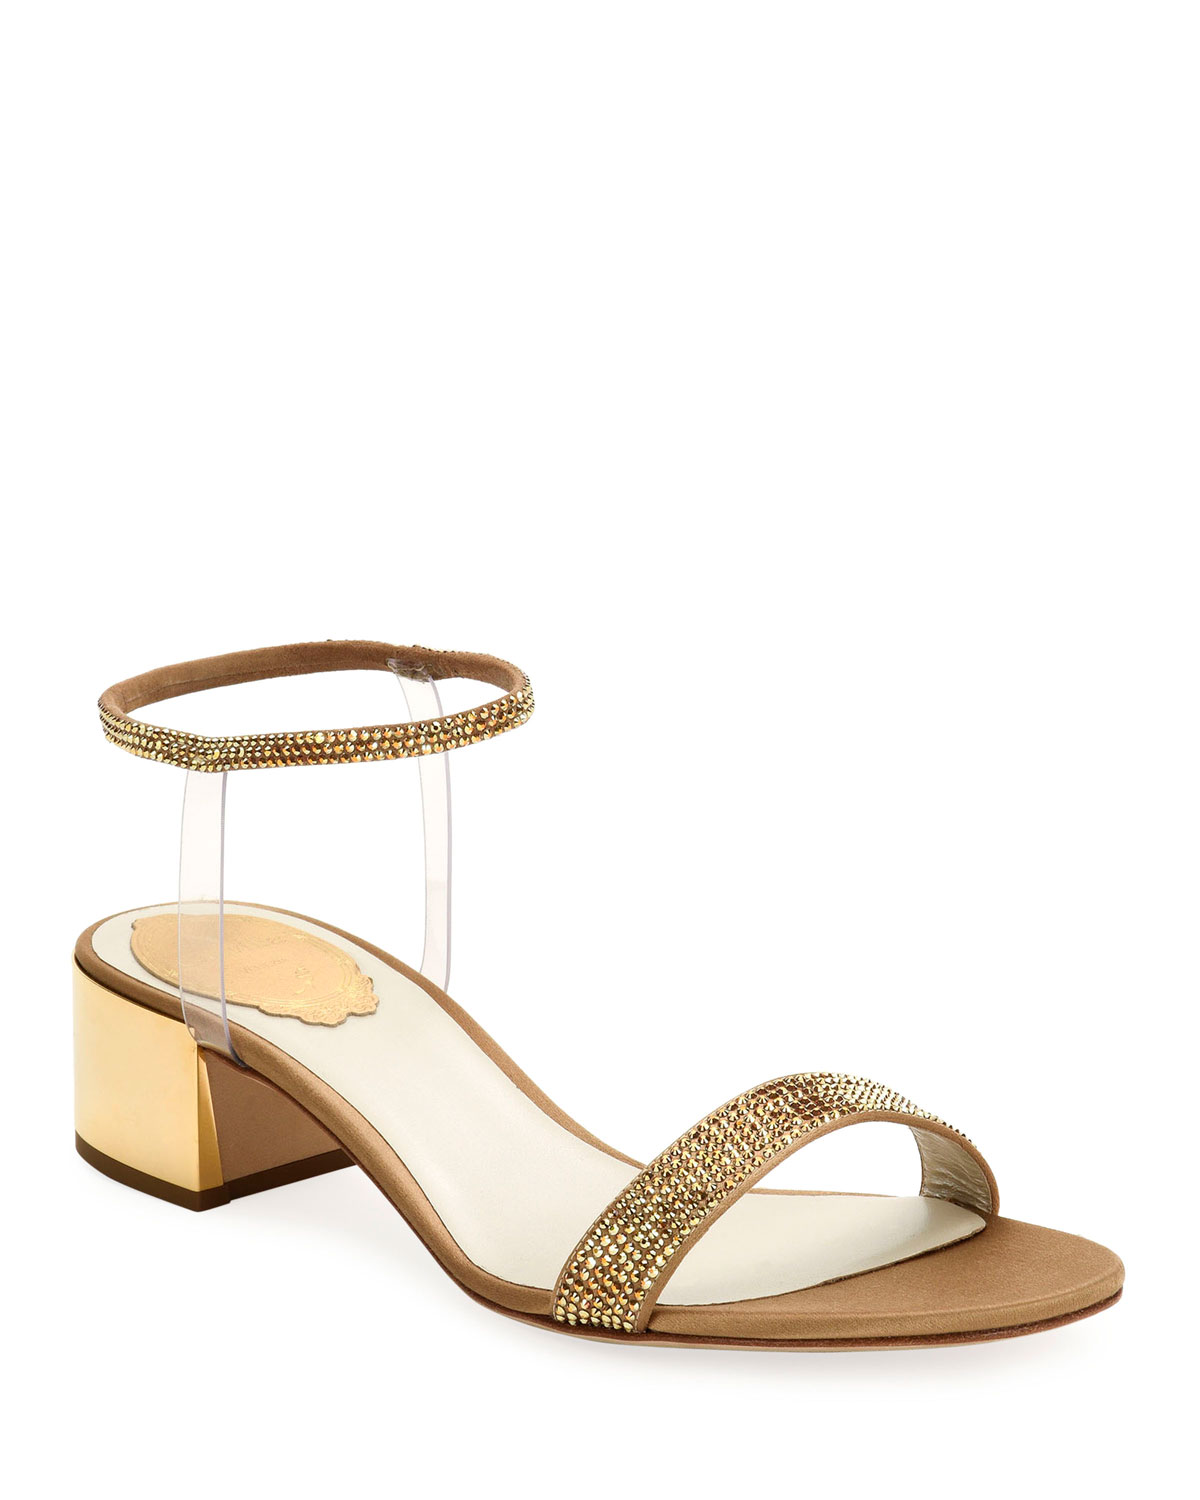 40mm Sandals with See-Through Ankle Wrap